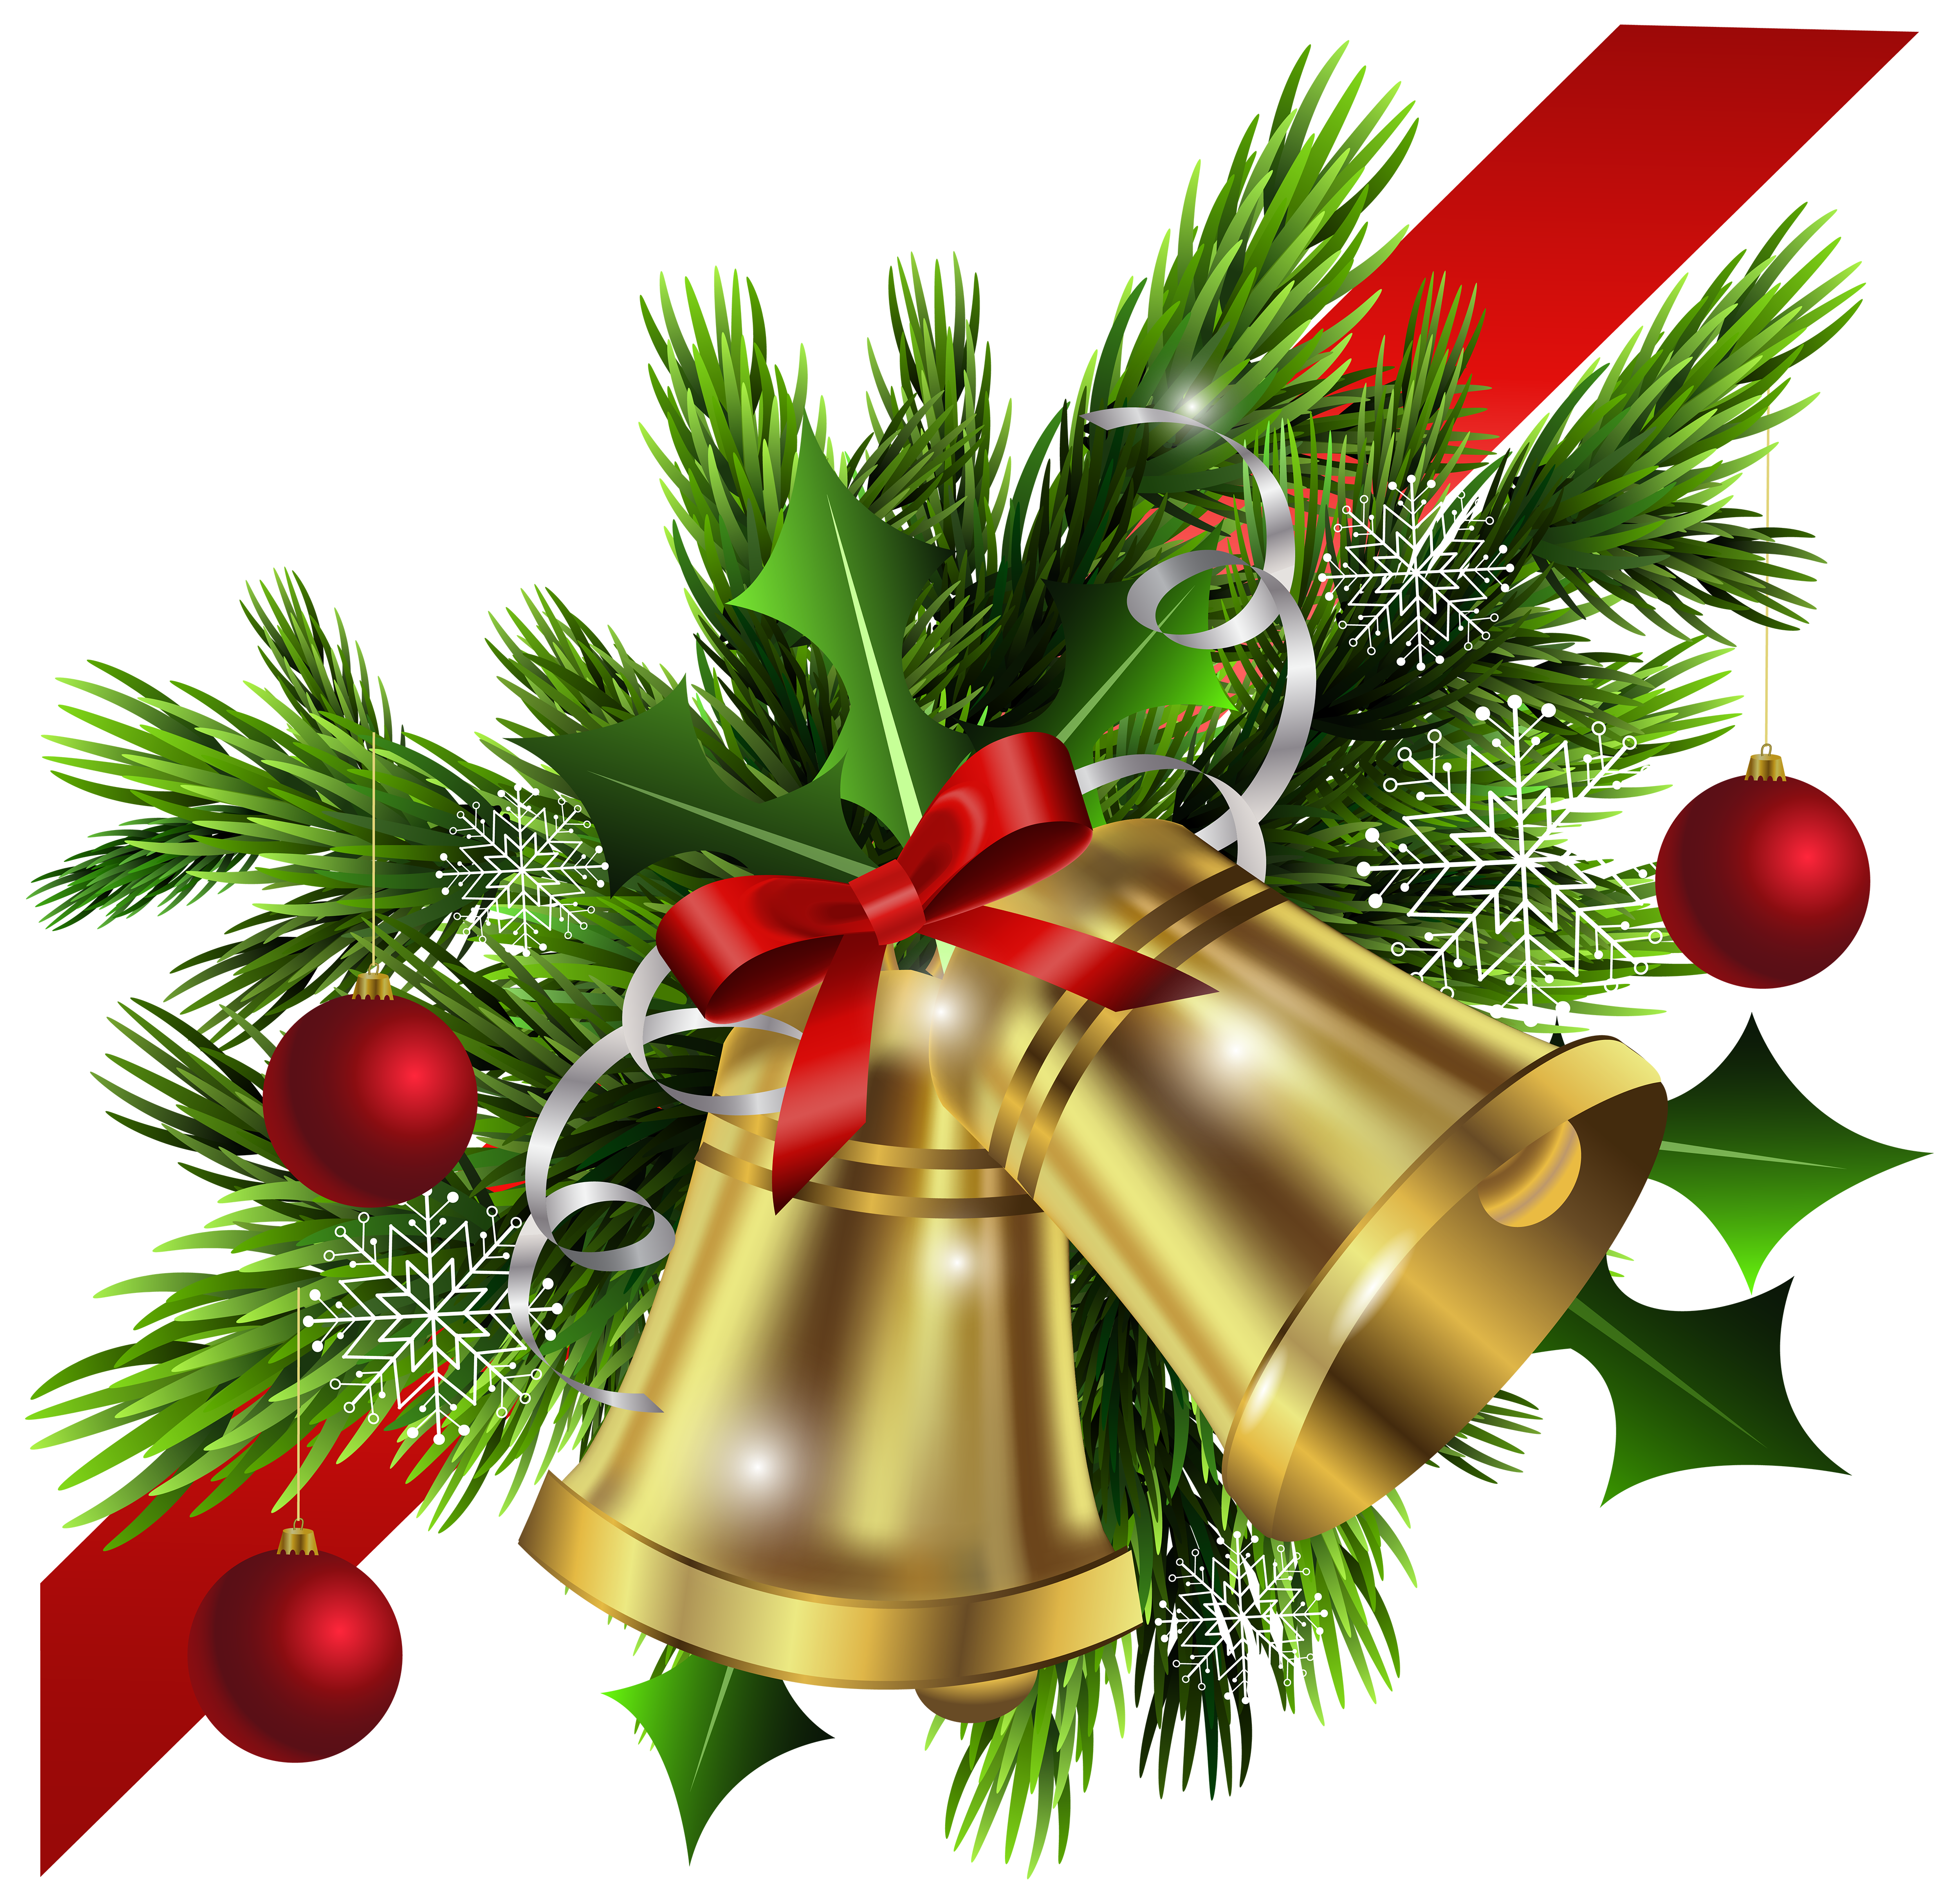 Christmas Red Bow and Bells Corner Transparent PNG Clip Art Image.